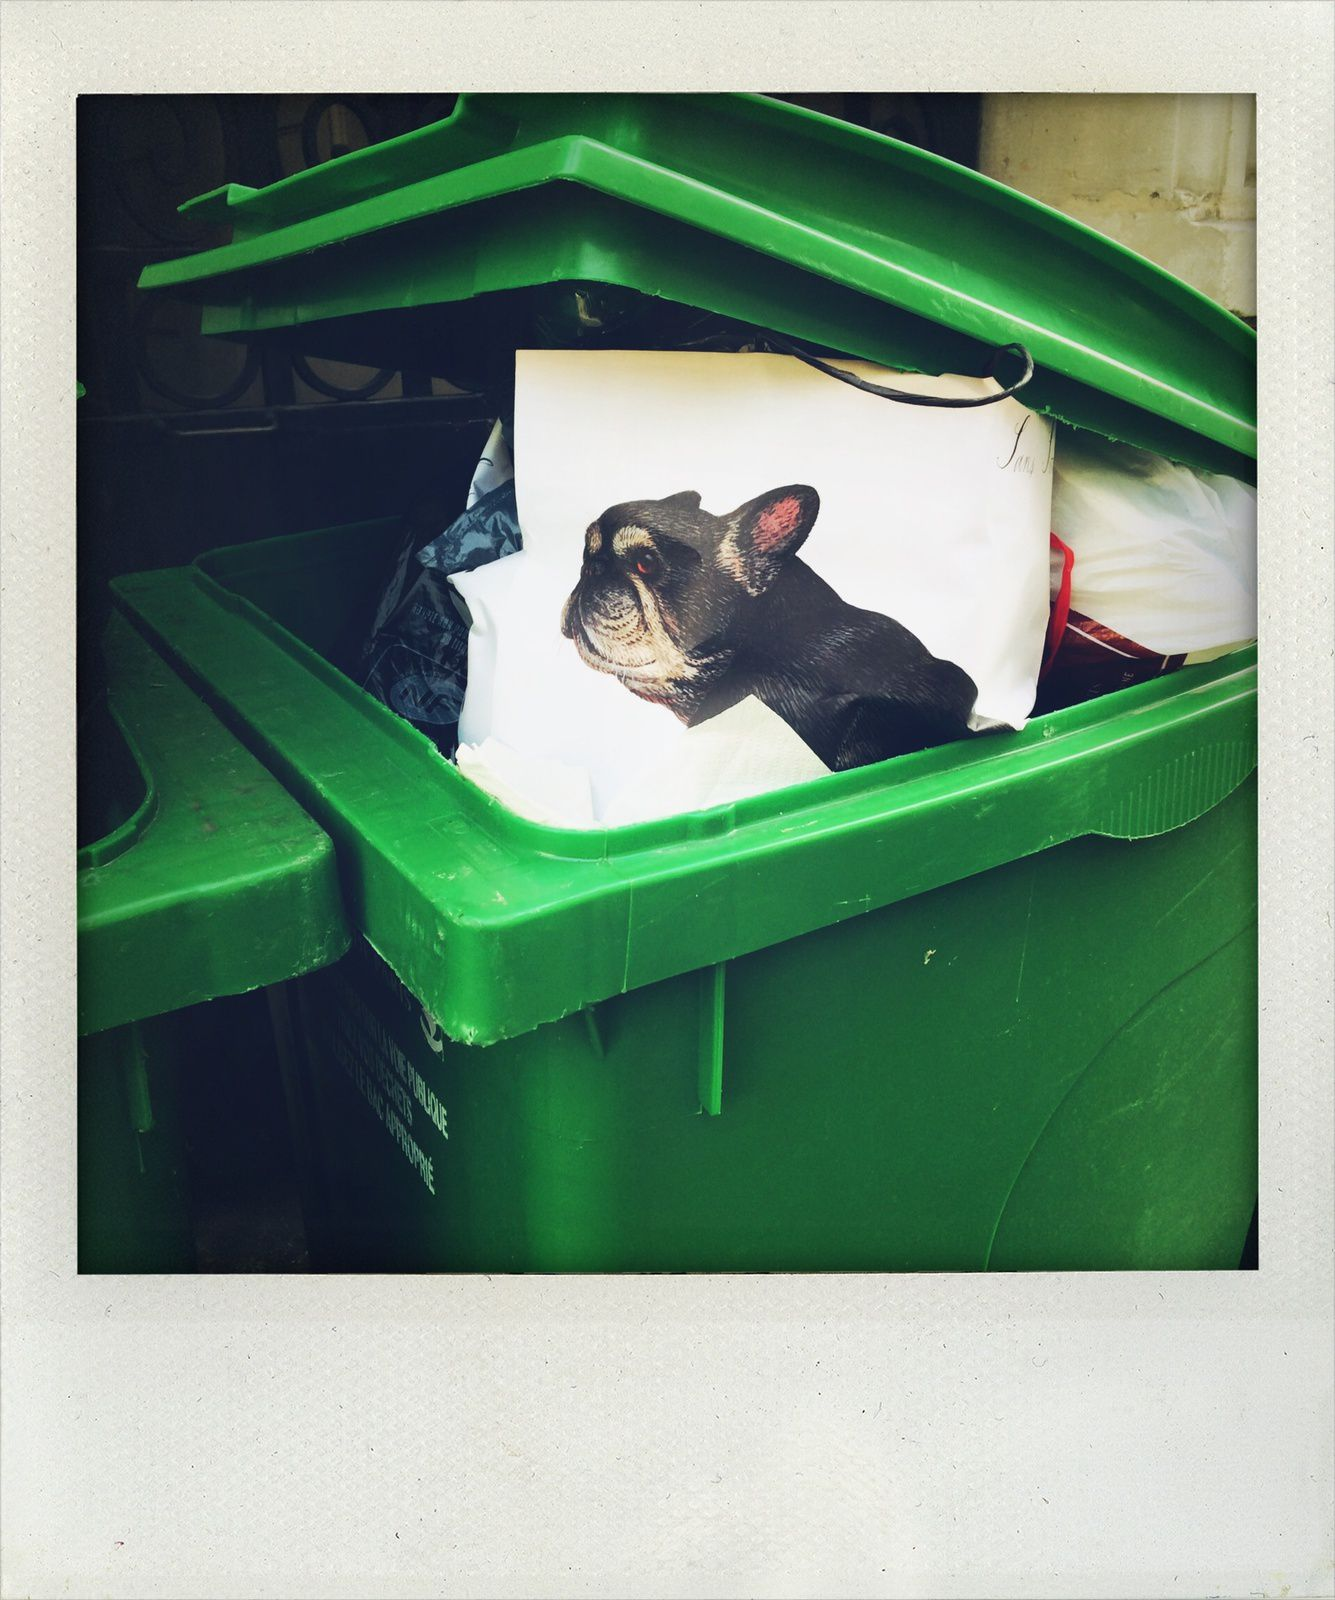 Dog in the dustbin